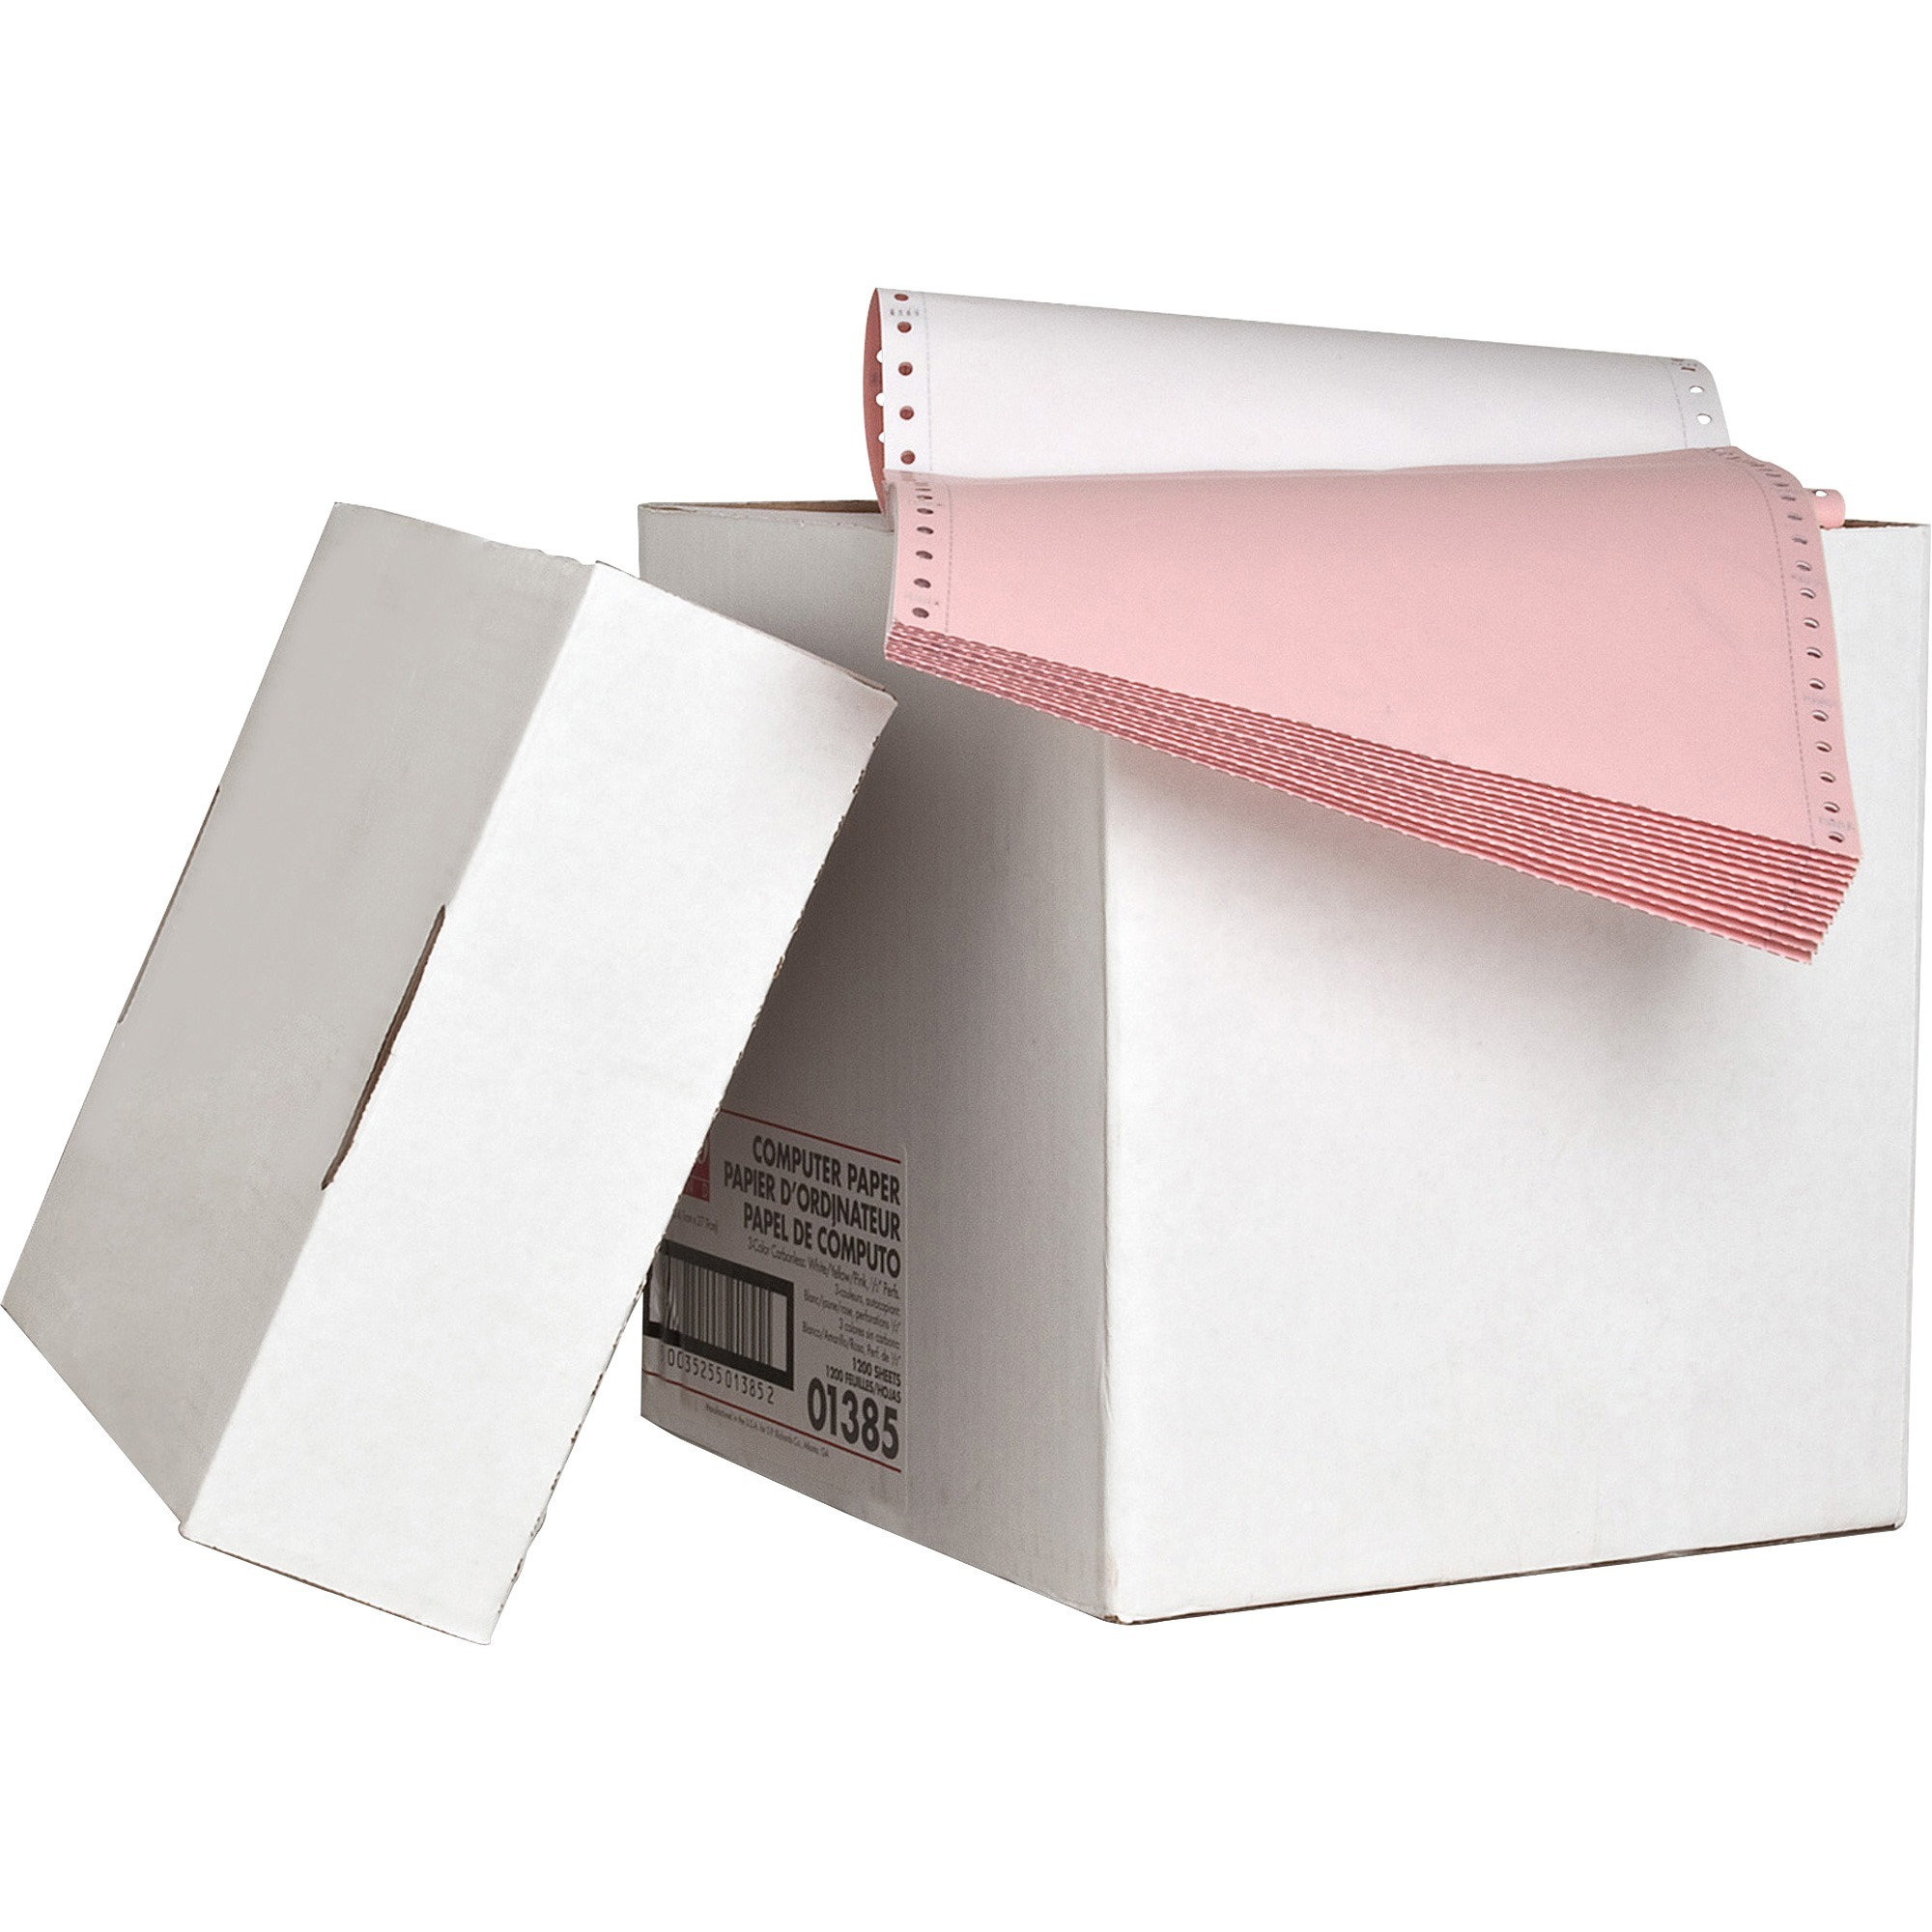 glennco office products ltd     office supplies    paper